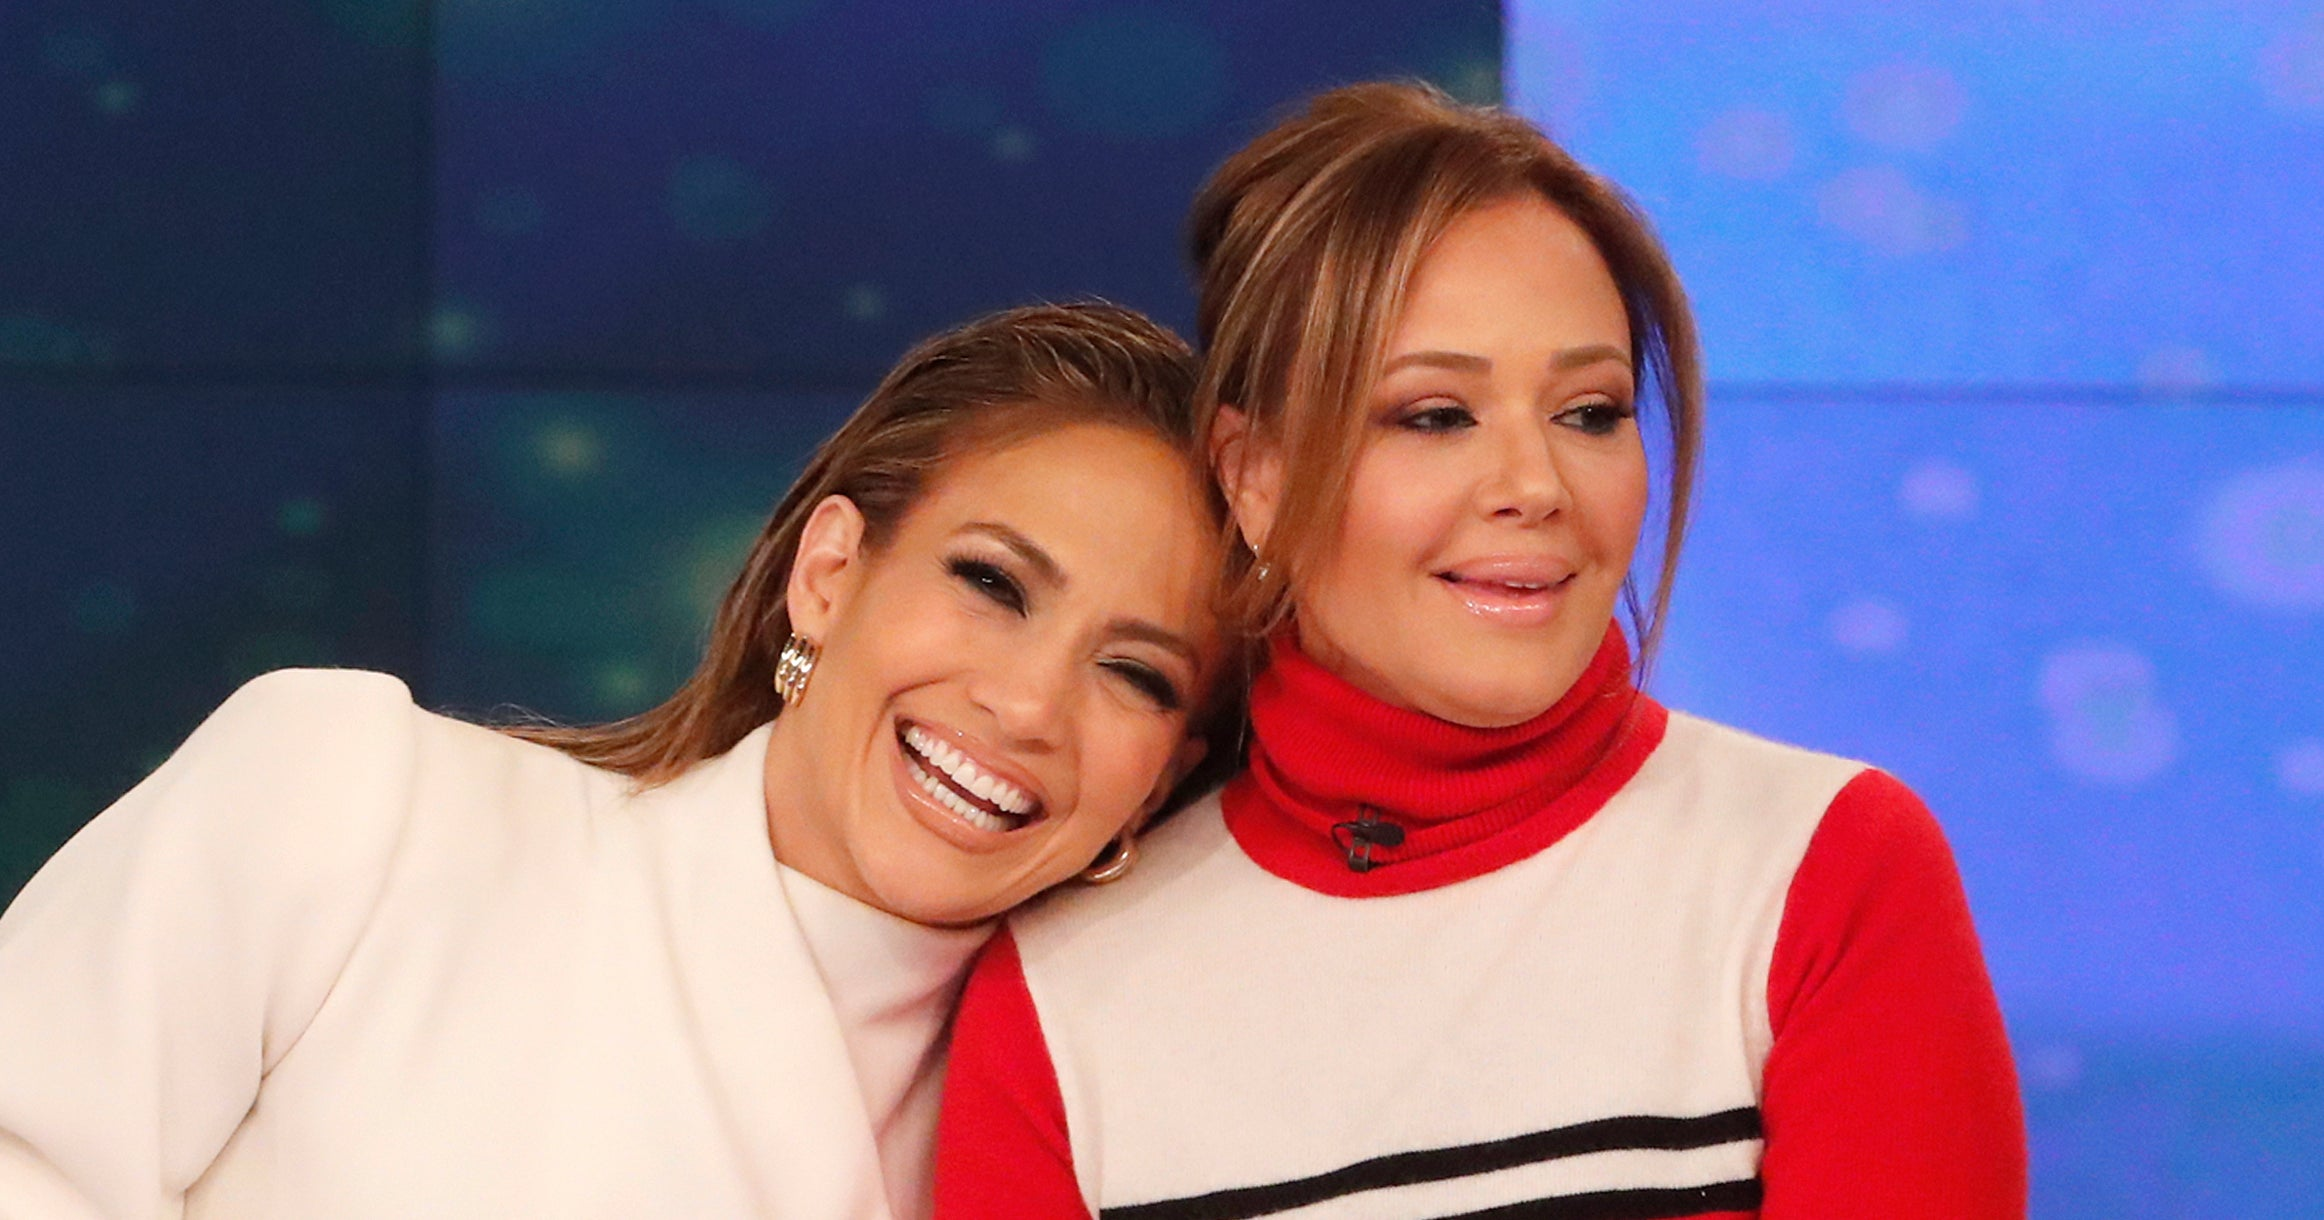 Thanks To Leah Remini, Jennifer Lopez & Ben Affleck Are Now Instagram Official